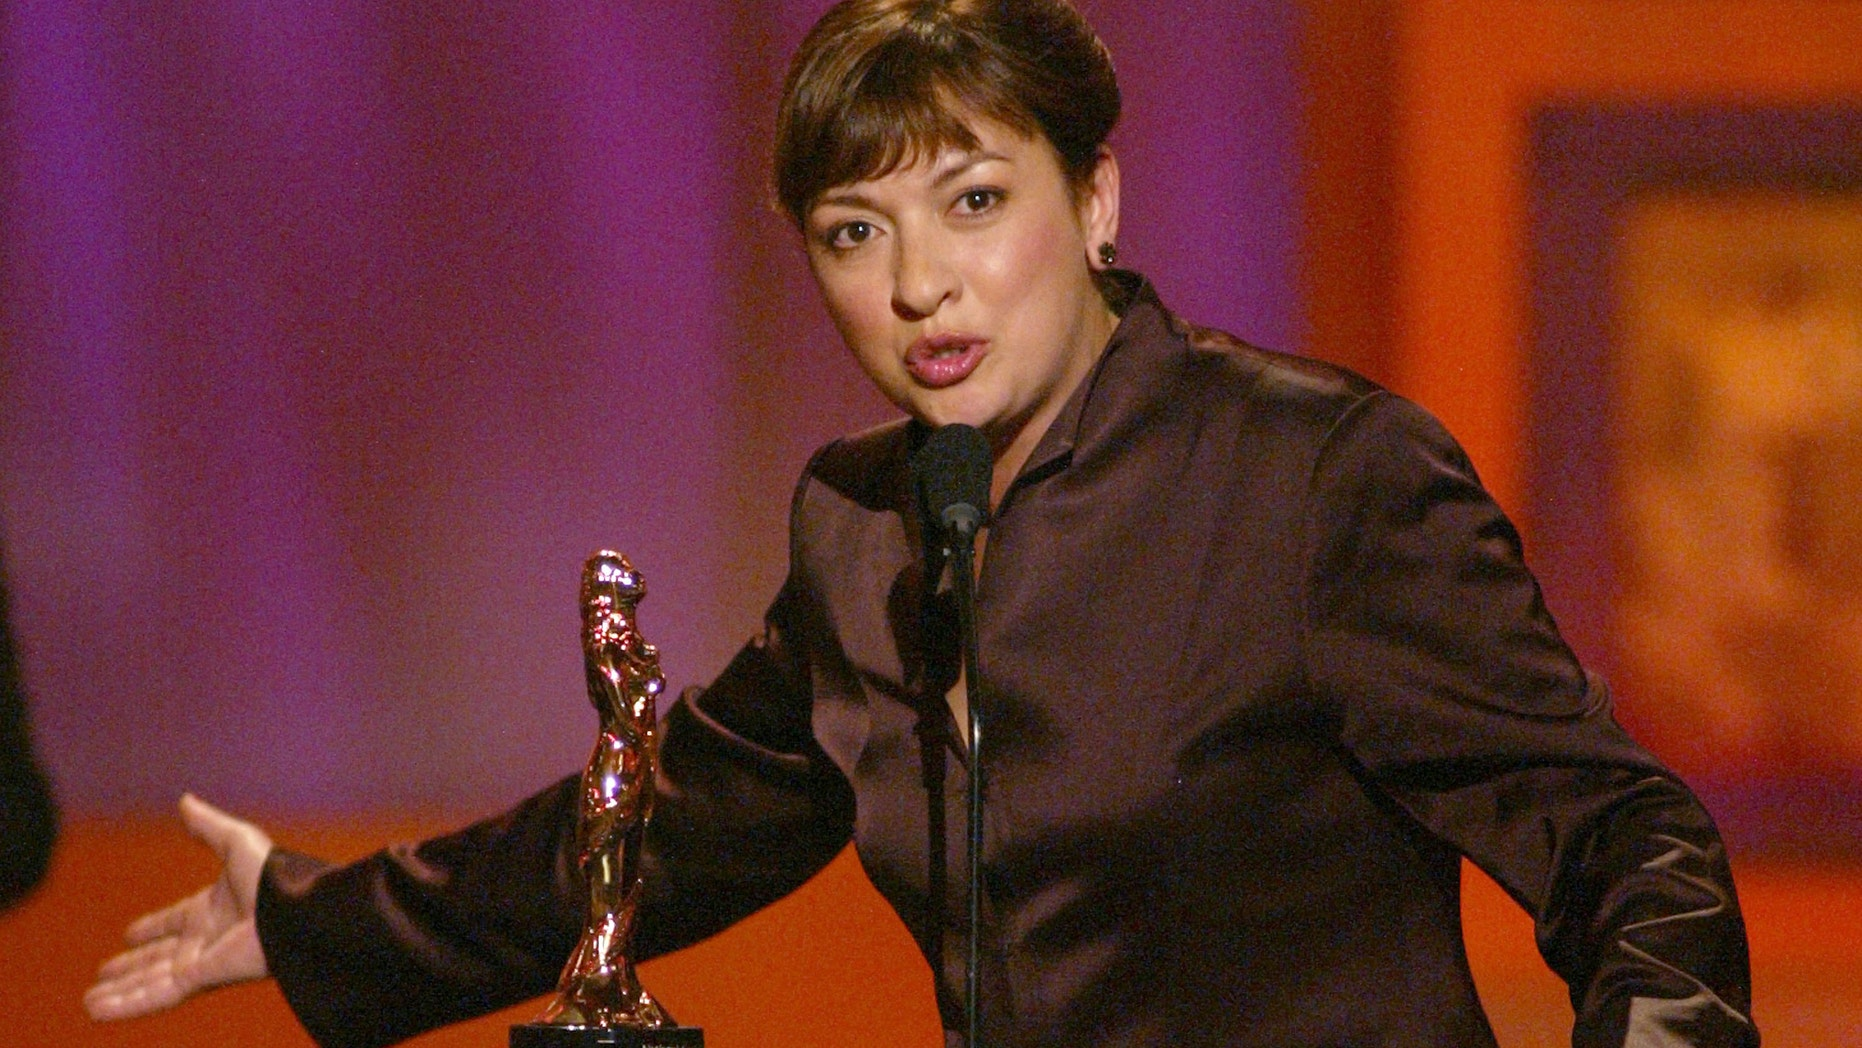 """Elizabeth Pena at """"The 2002 ALMA Awards"""" at the Shrine Auditorium in Los Angeles, Ca. Saturday, May 18, 2002. Photo by Kevin Winter/ABC/ImageDirect."""